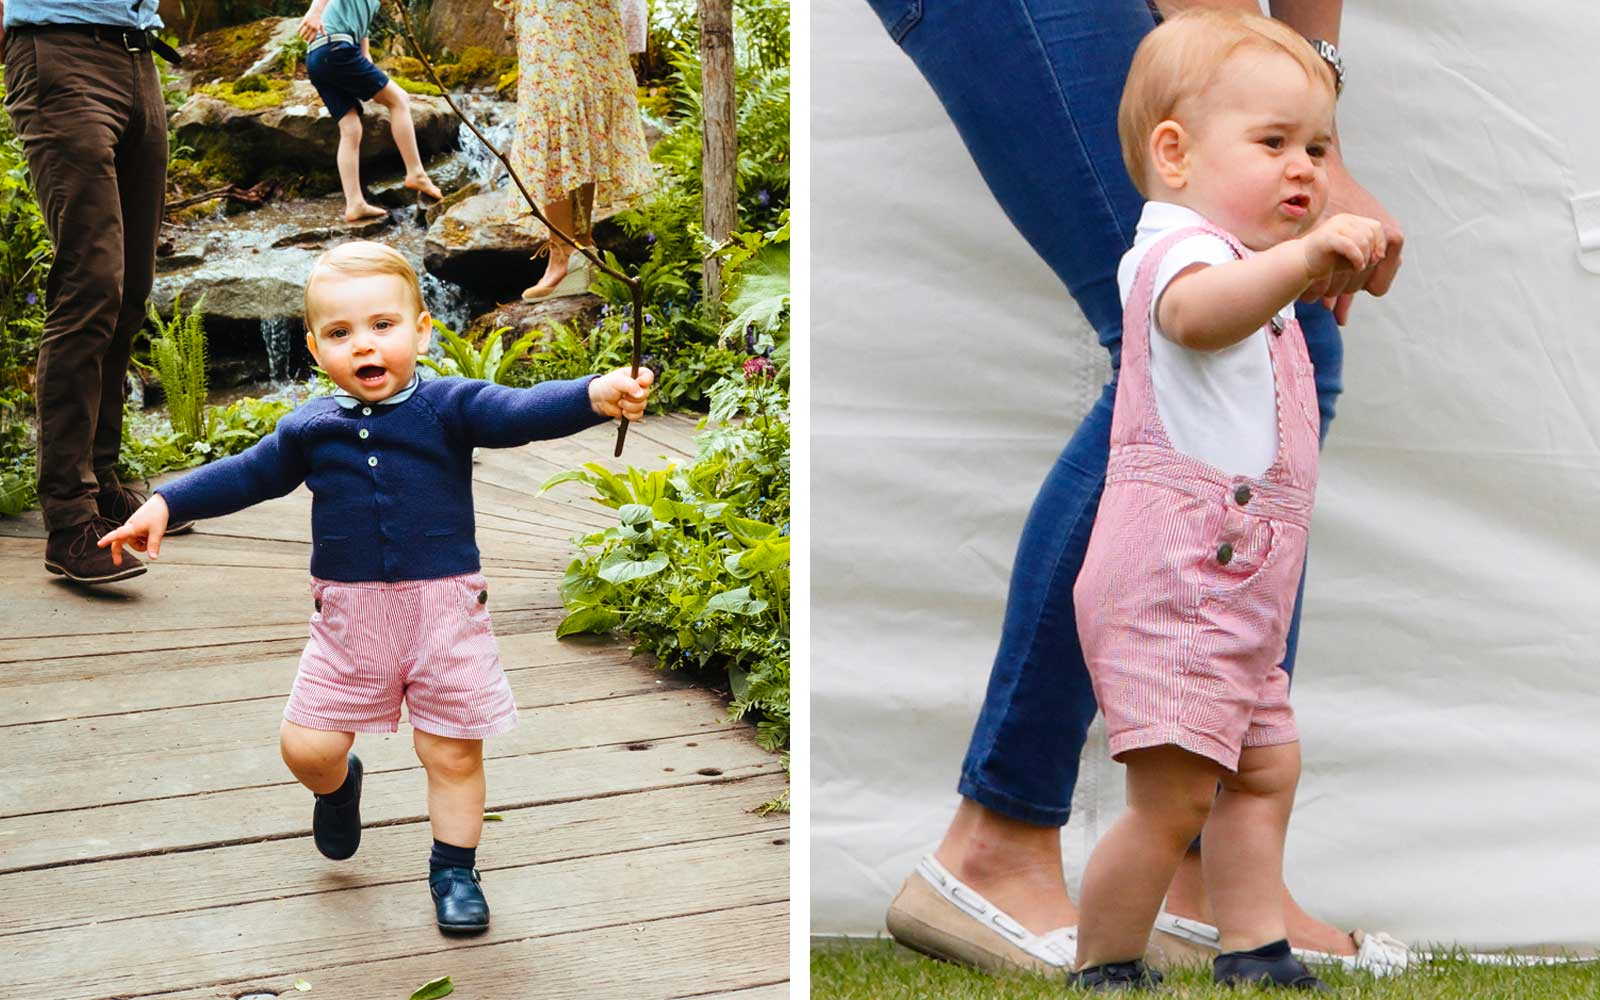 Prince Louis on the right, Prince George on the left